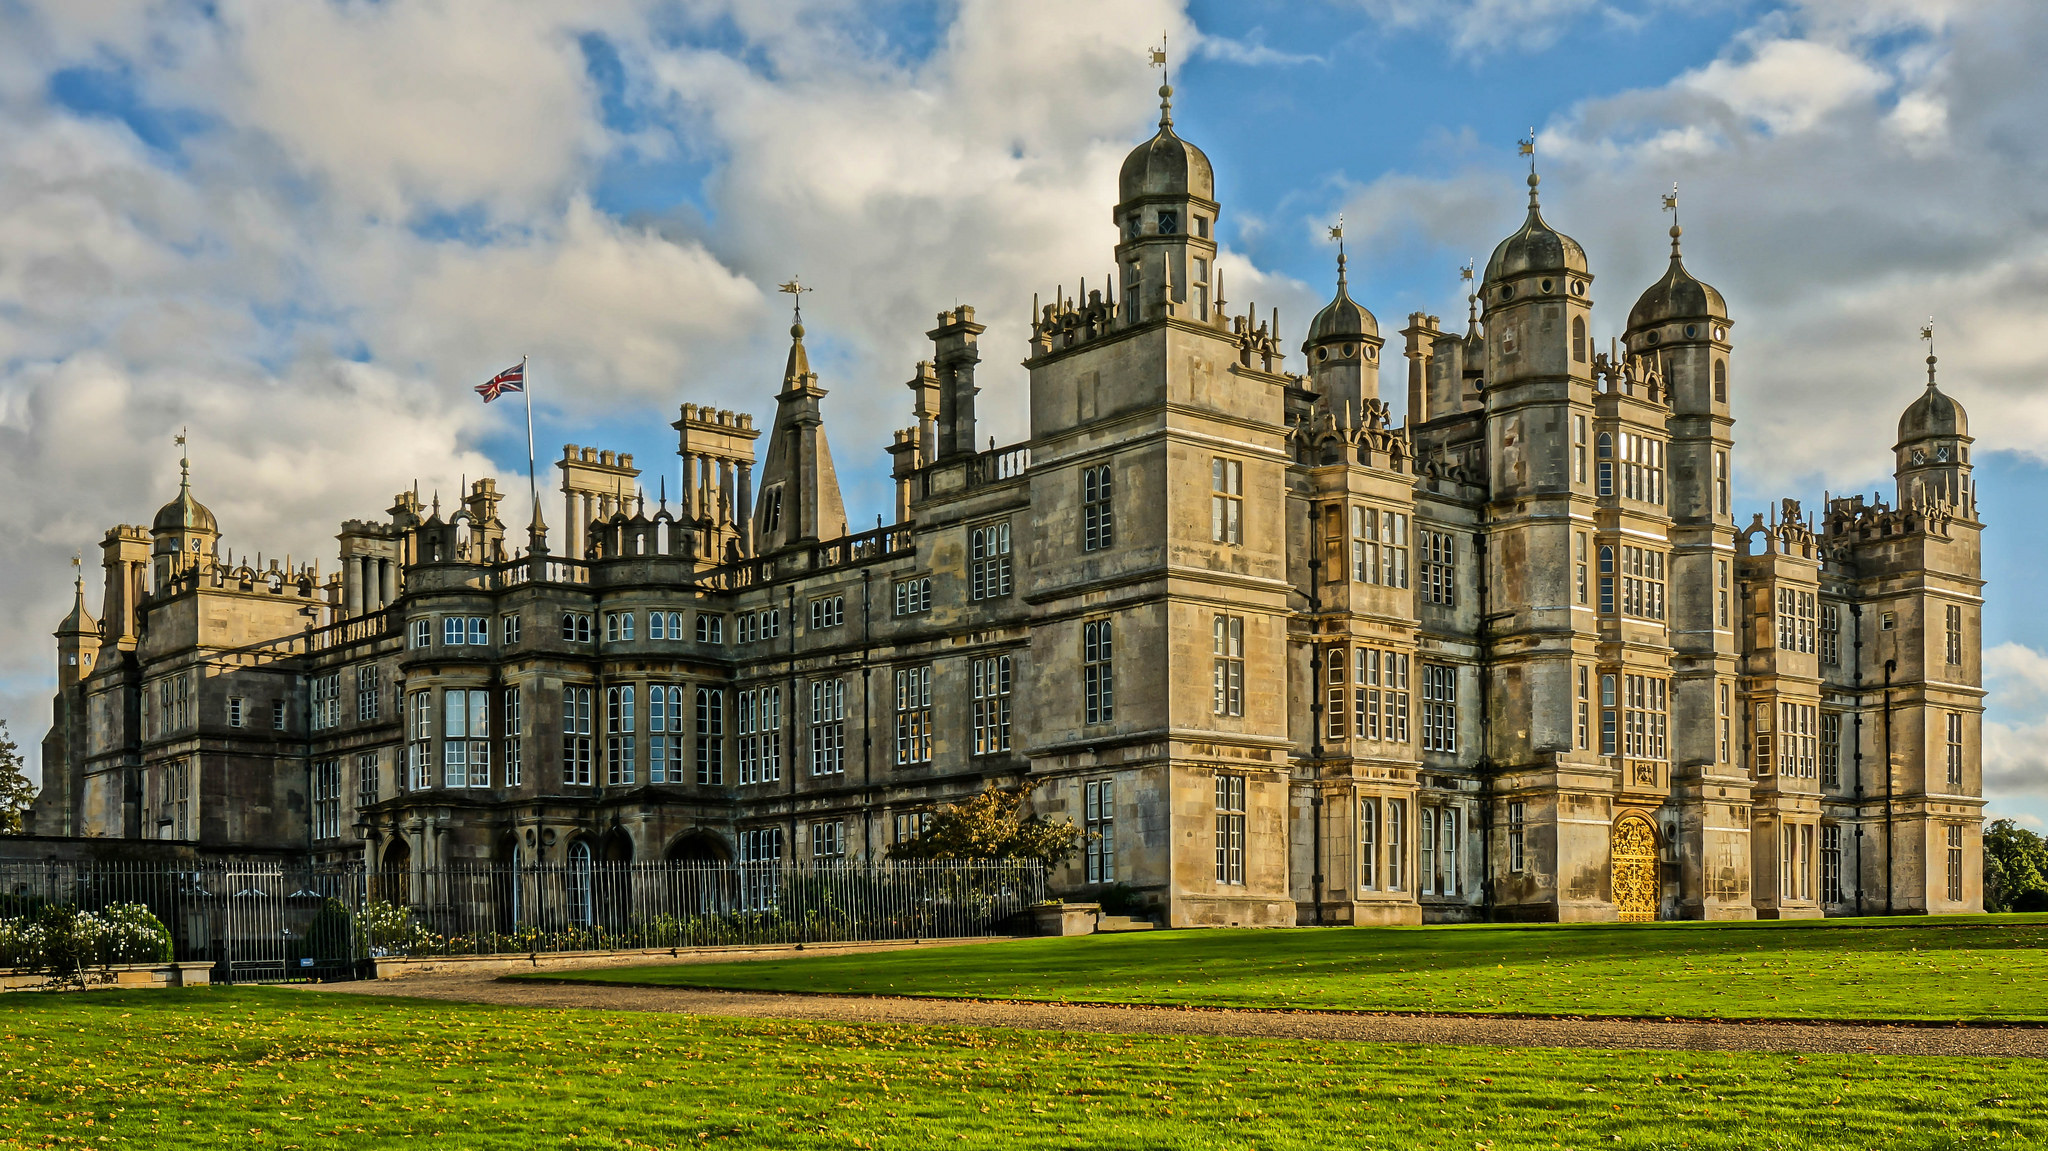 Burghley House Private Residence In England Thousand